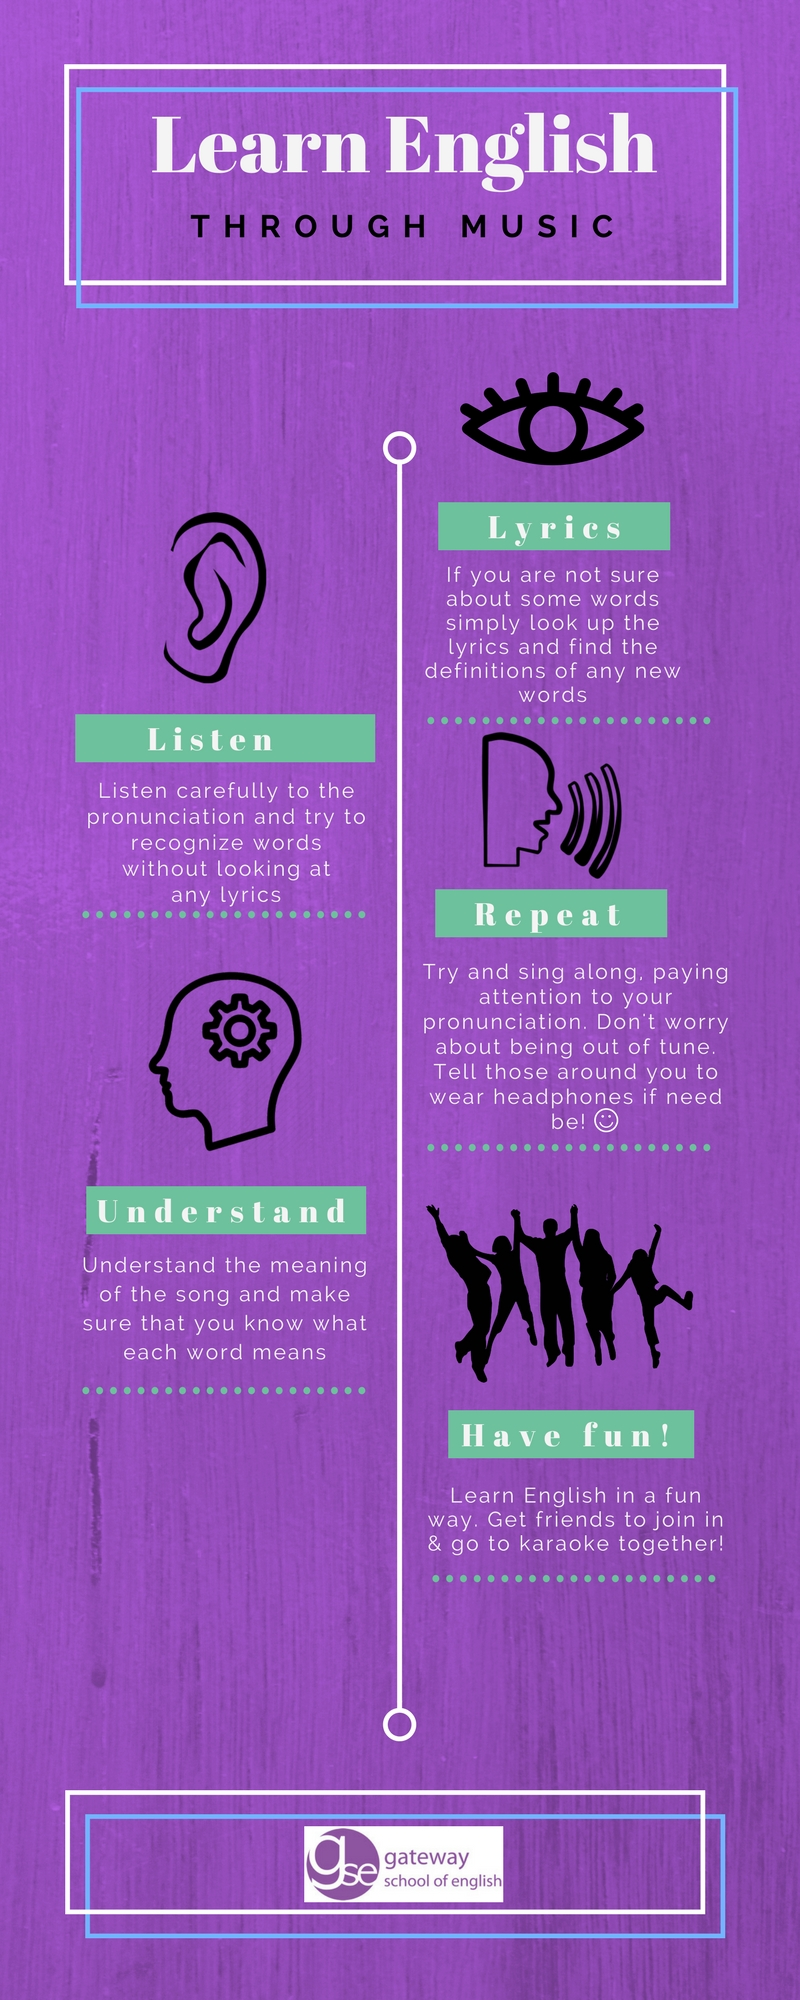 8 Great Tips to Learn English Through Songs and Music ...